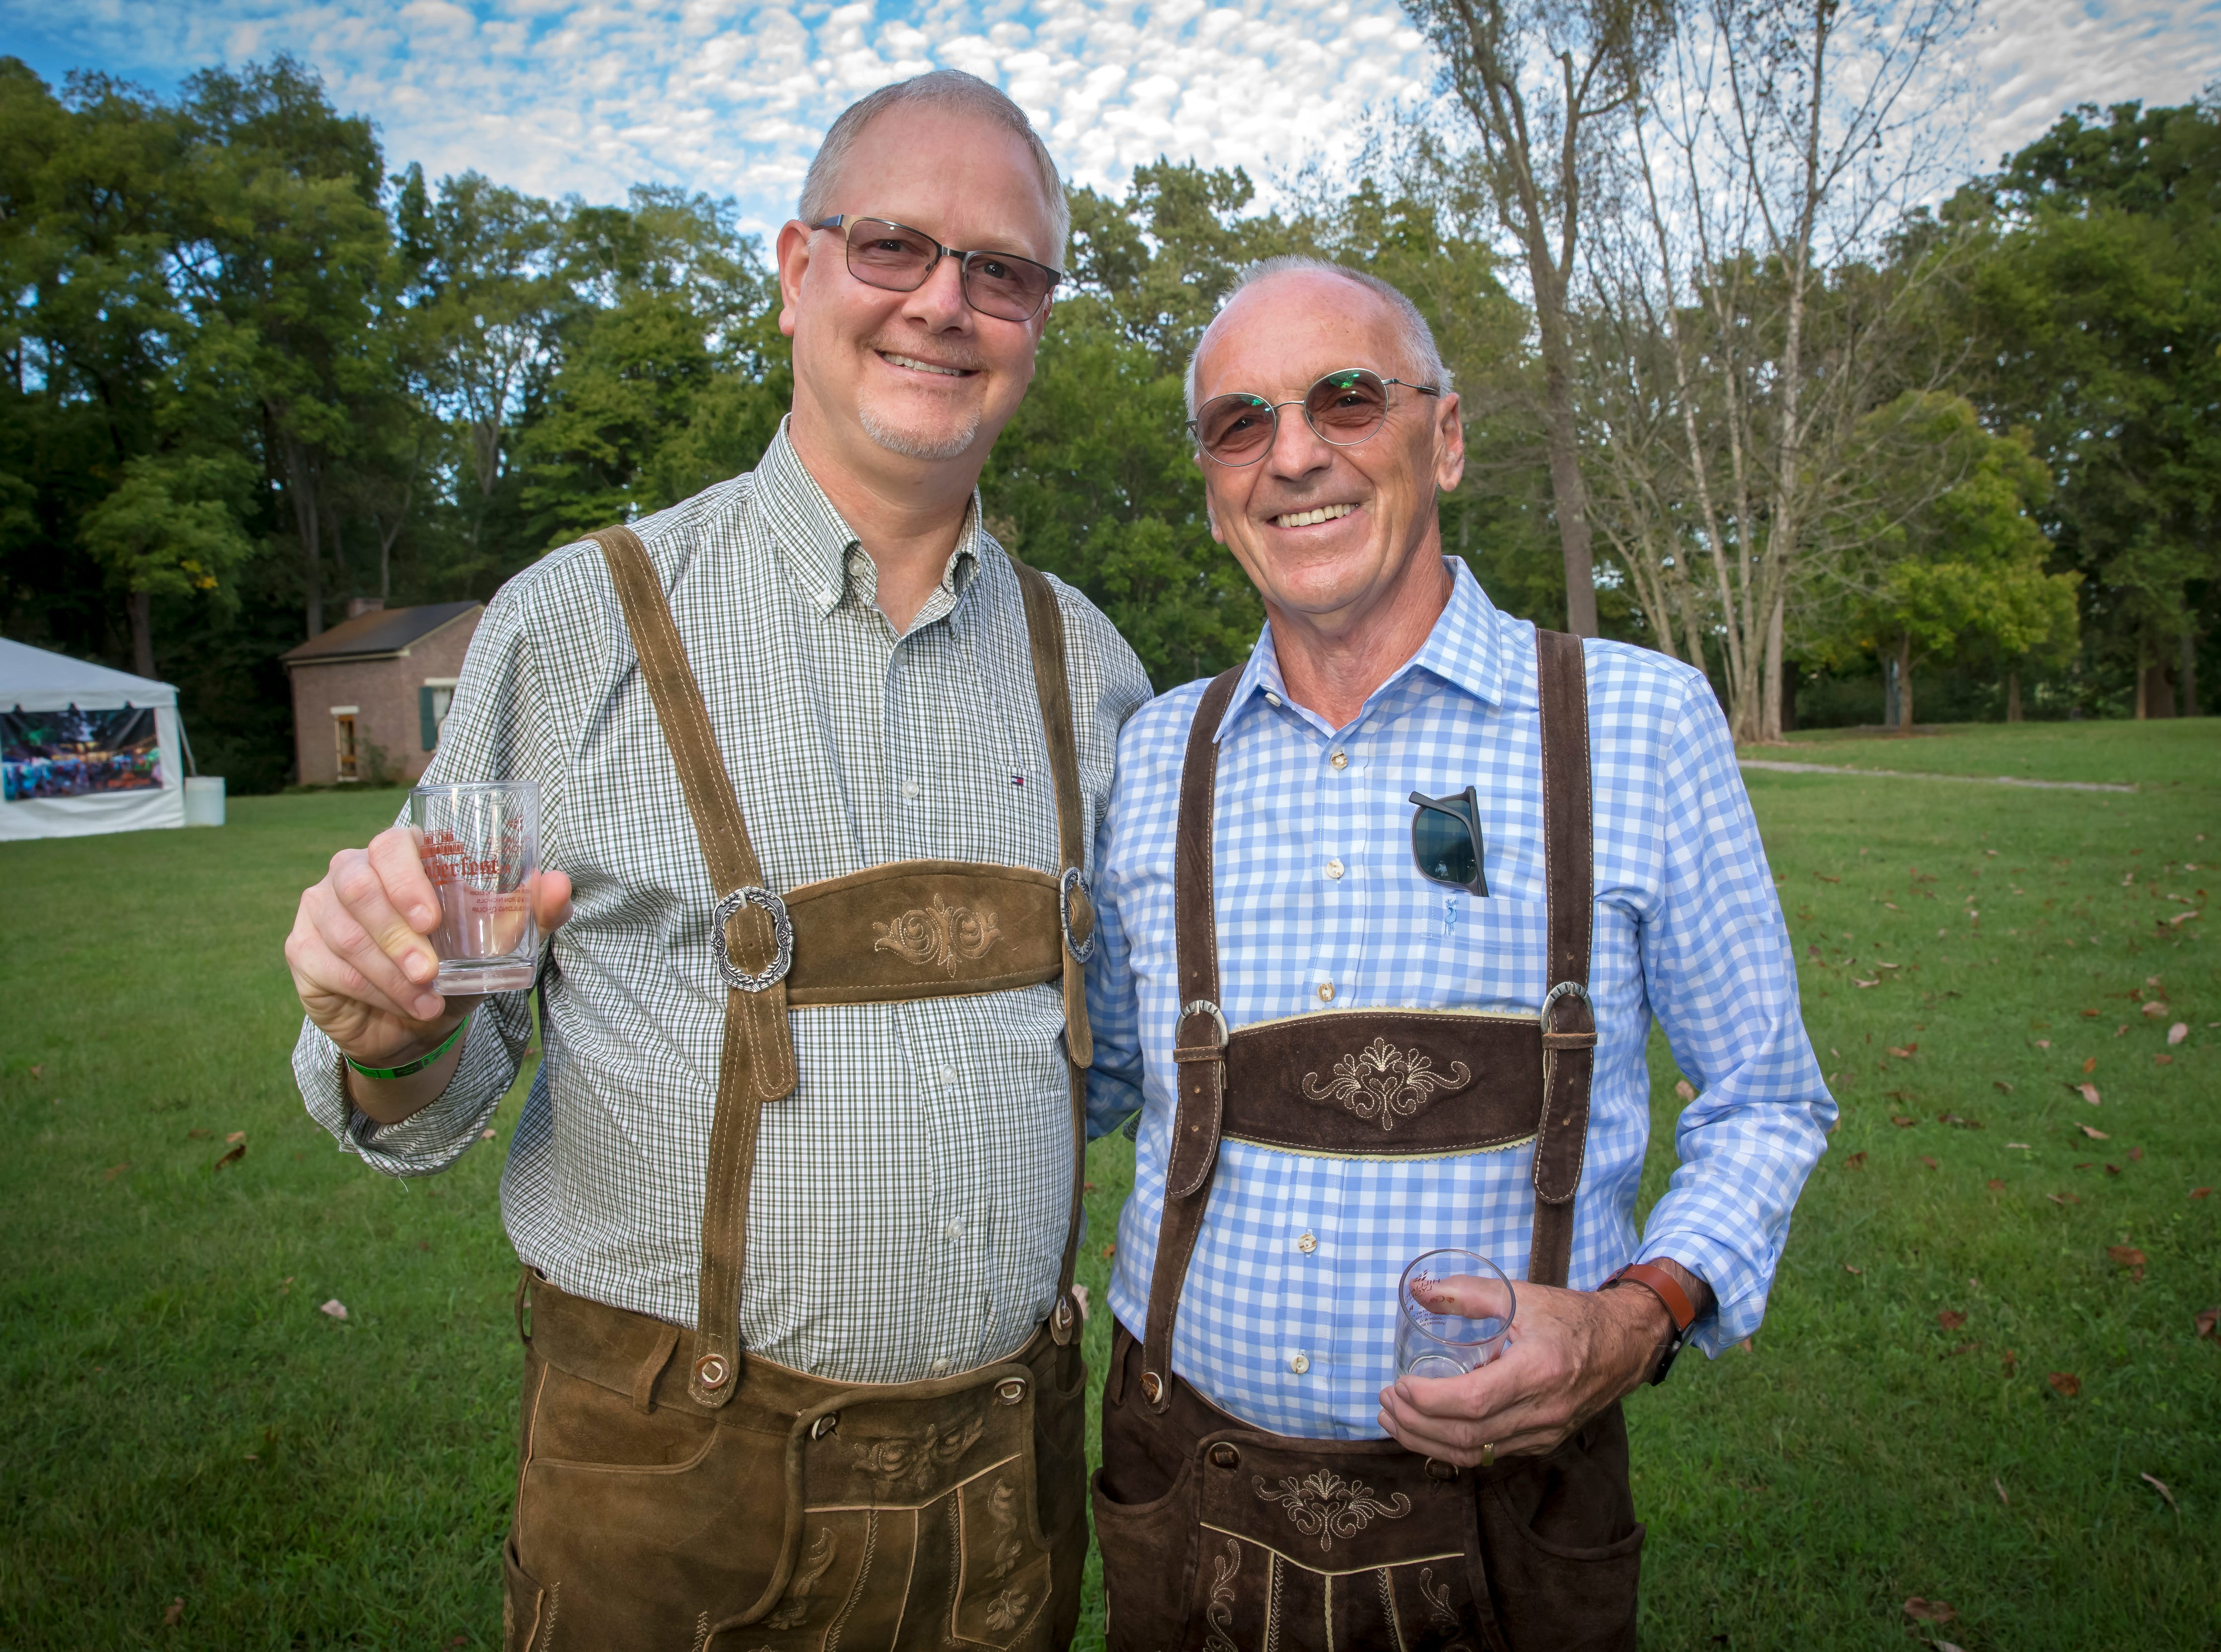 Harry Ristau and Darrell Harris at the fourth-annual Oktoberfest held at Oaklands Mansion.Jim Davis/for the DNJ